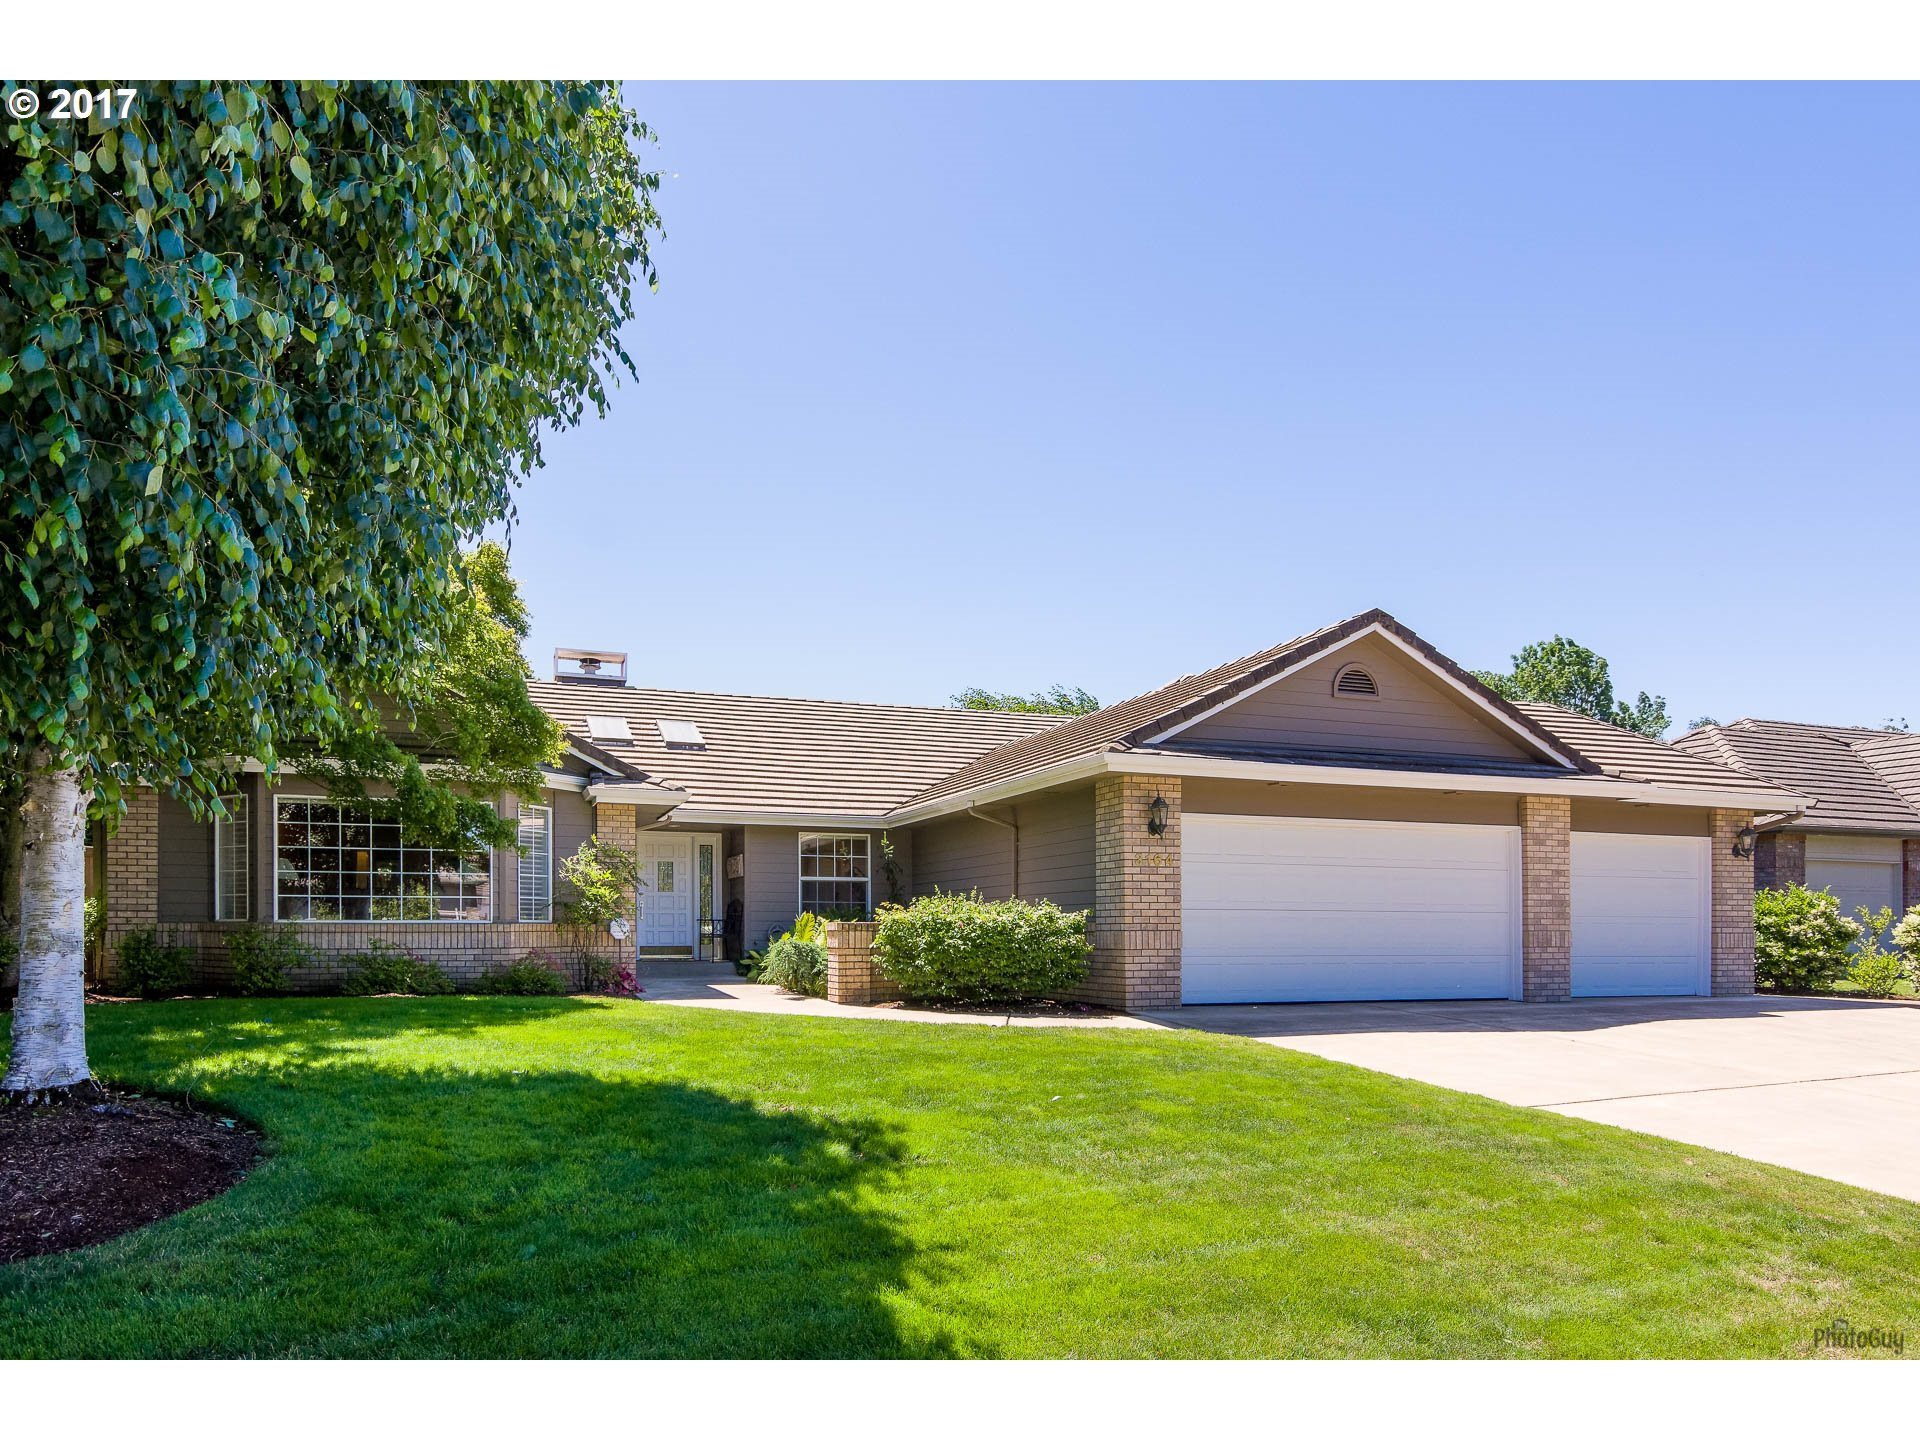 3164 WOLF MEADOWS LN, Eugene, OR 97408